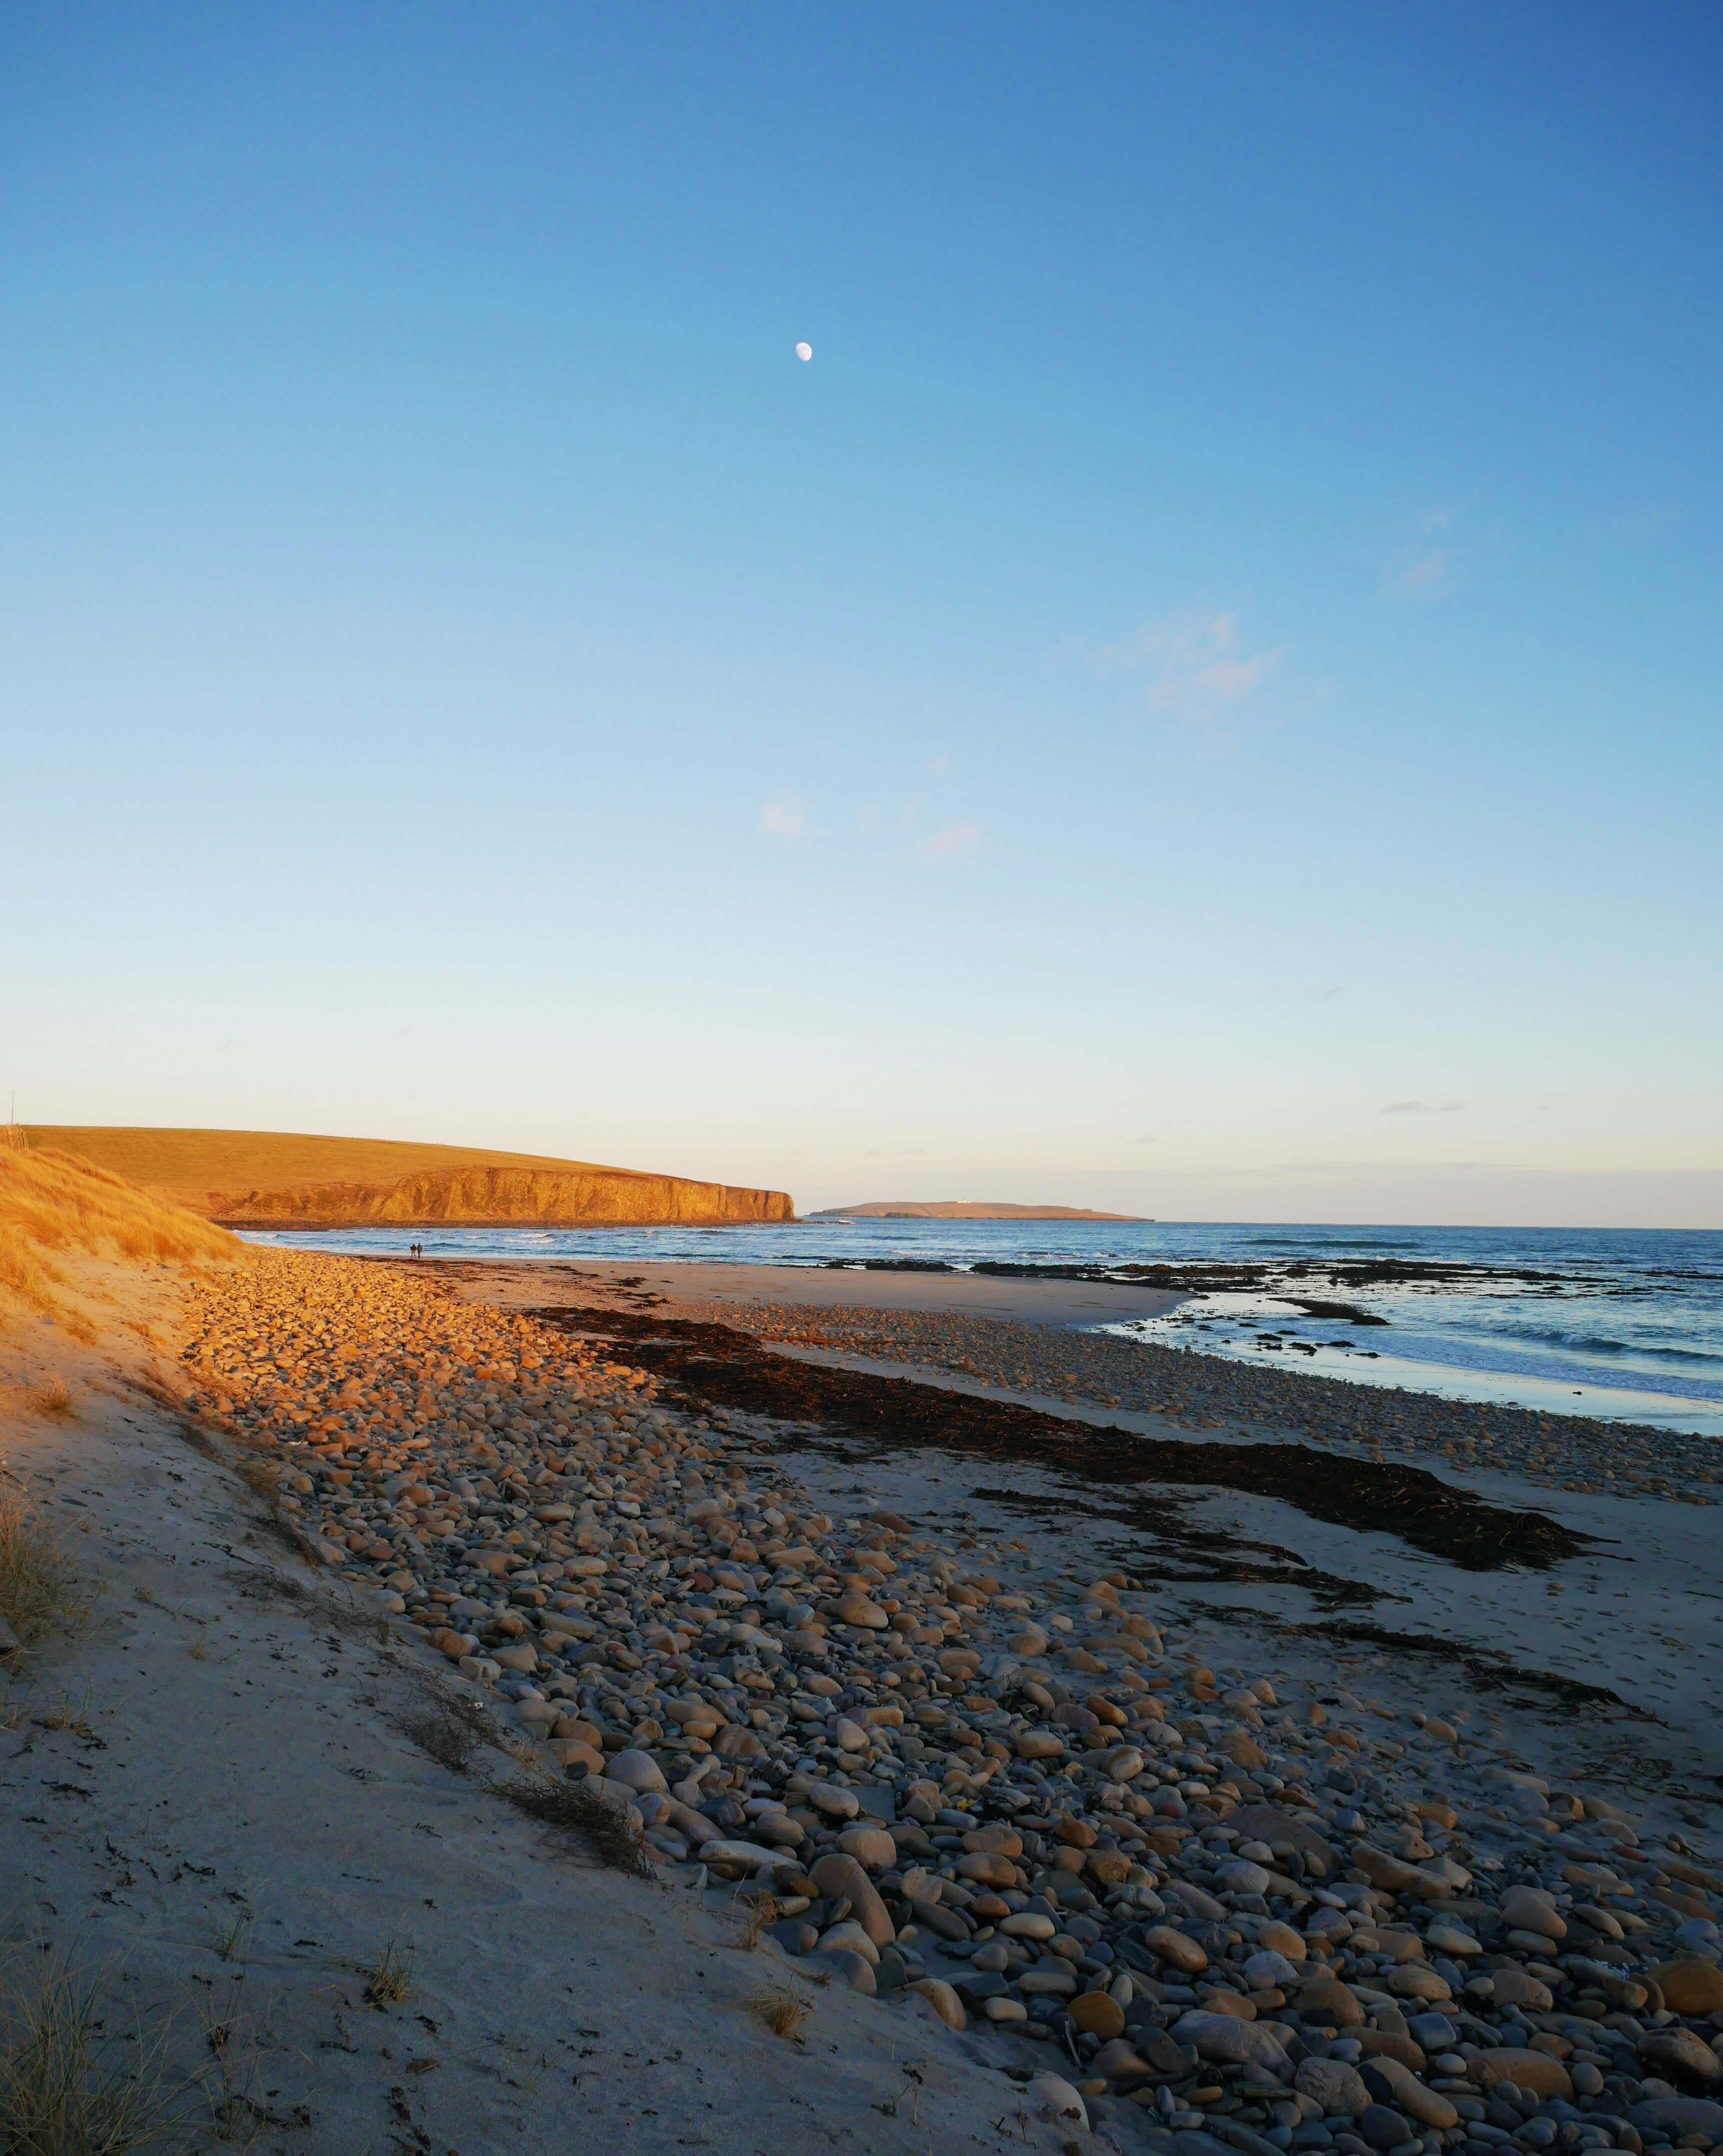 Dingieshowe Beach, Viking thing site, Orkney Islands, Scotland